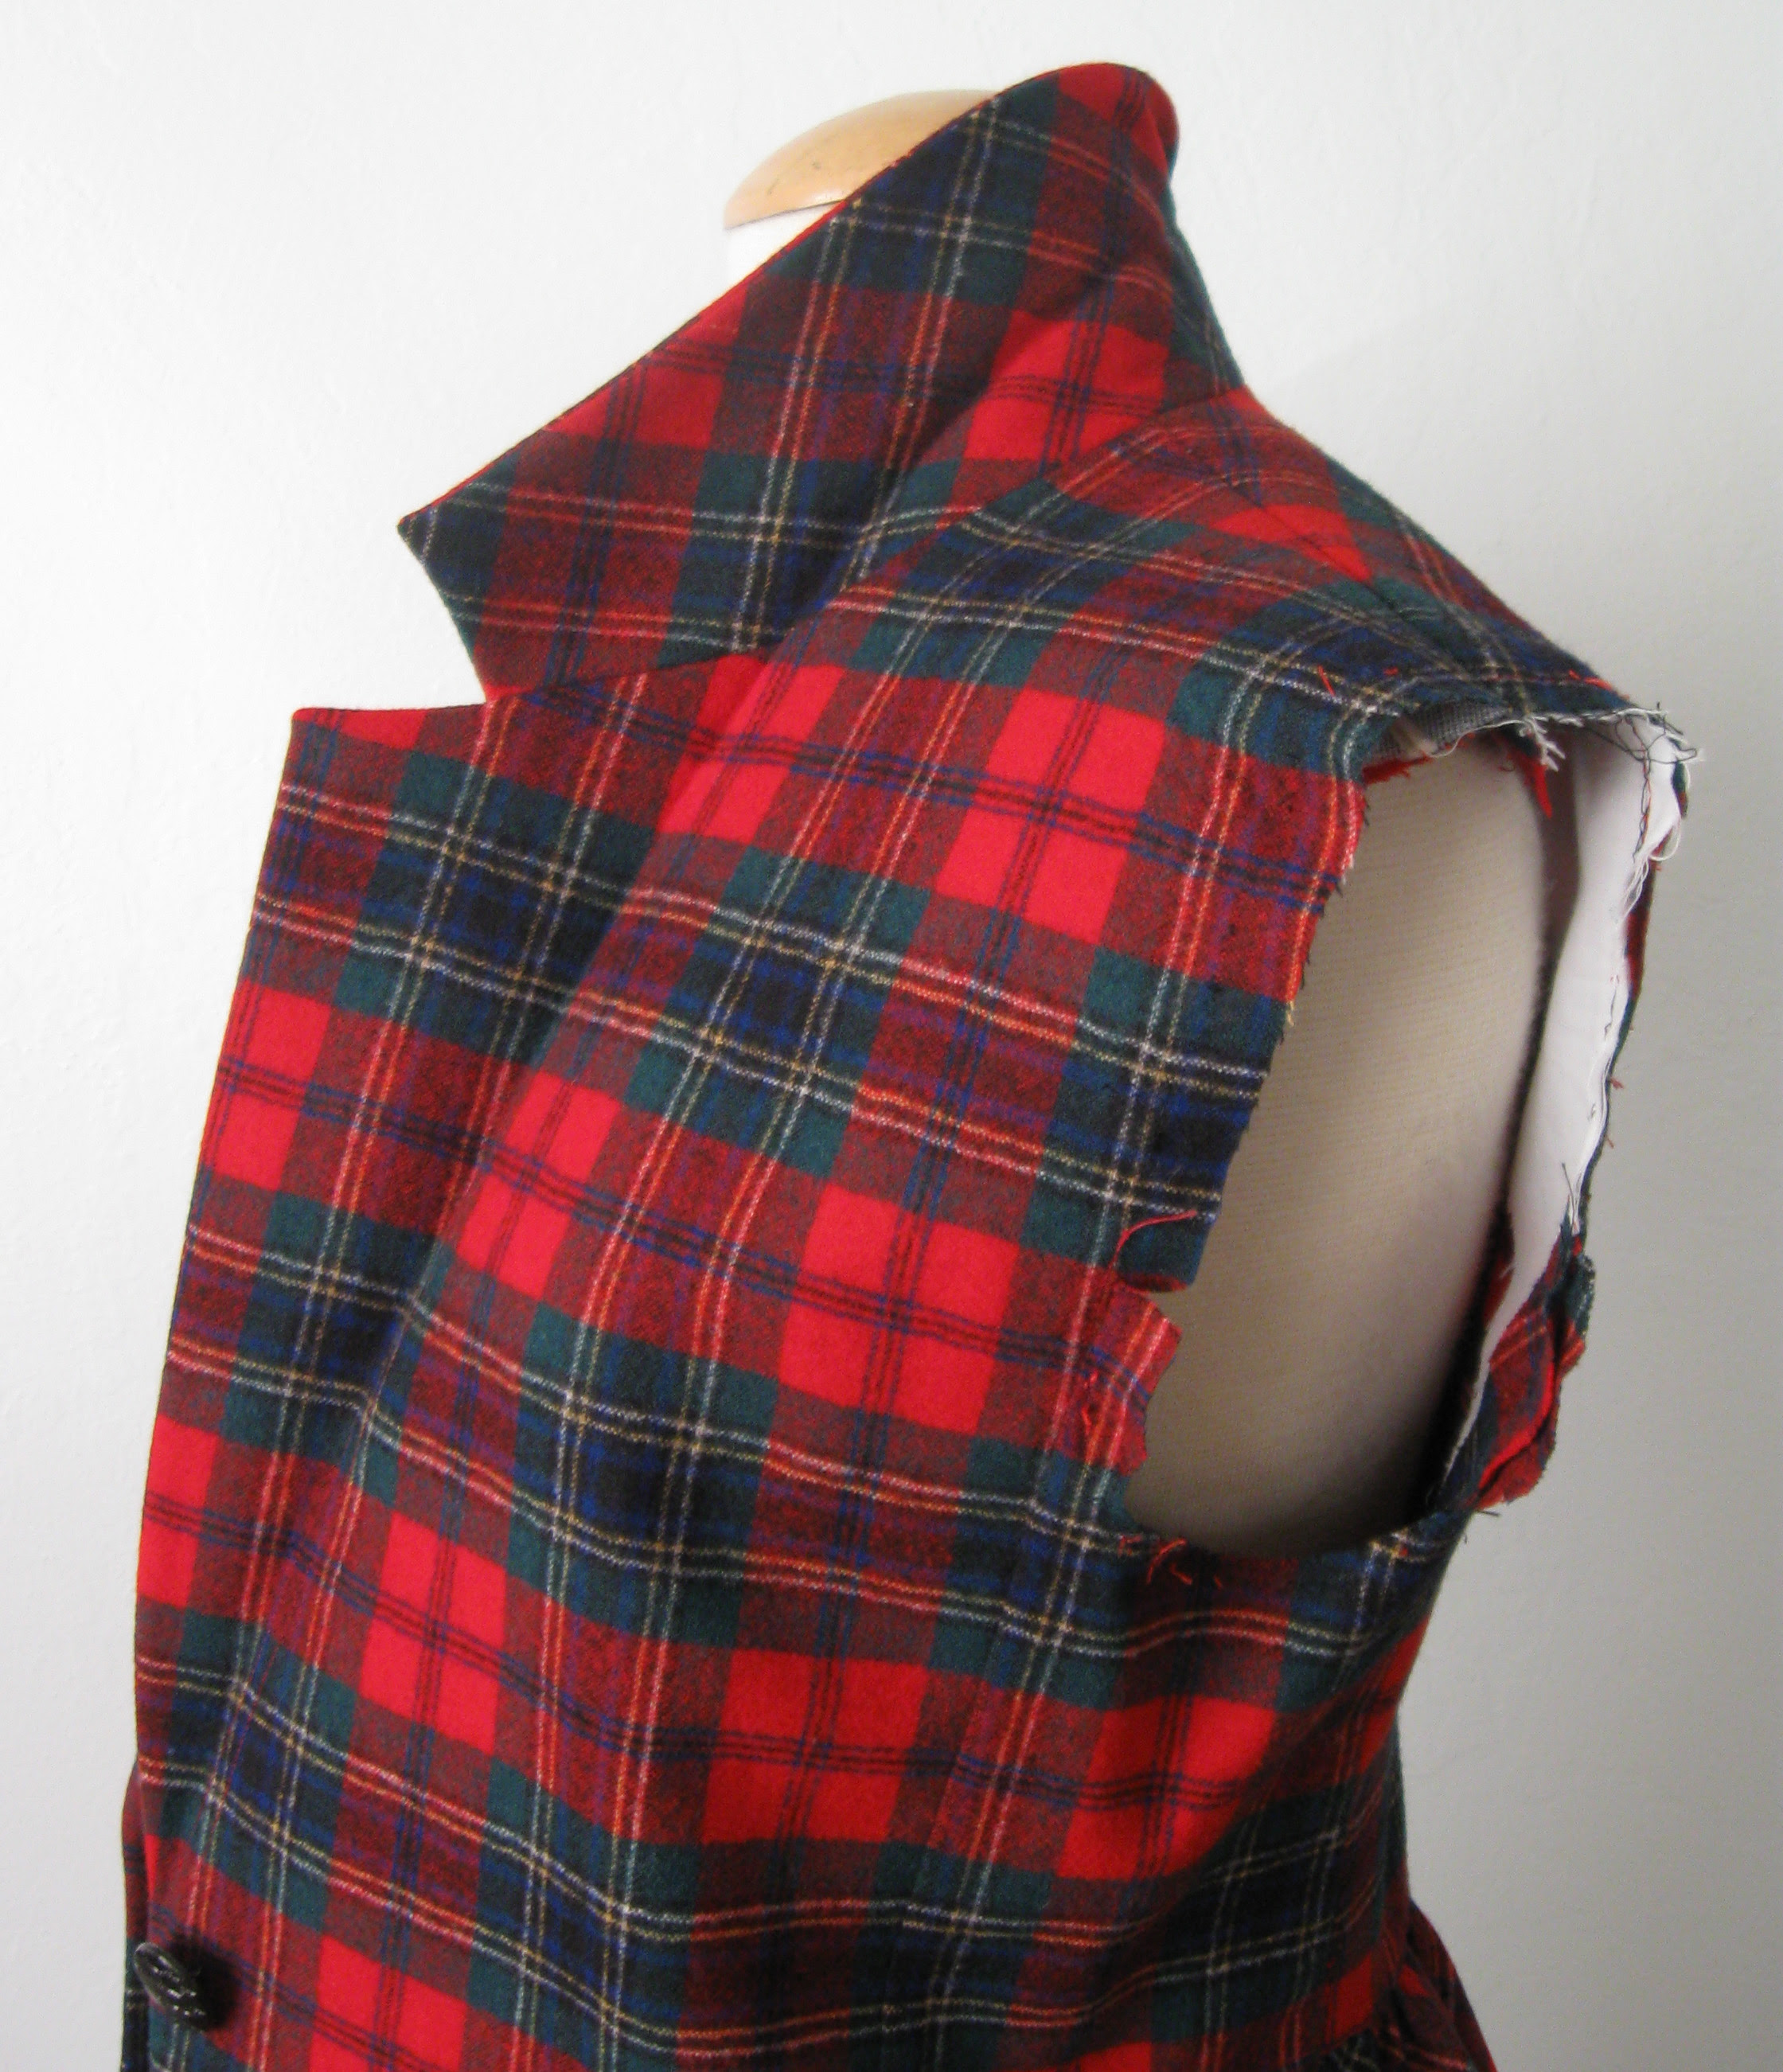 plaid jacket sleeve removed